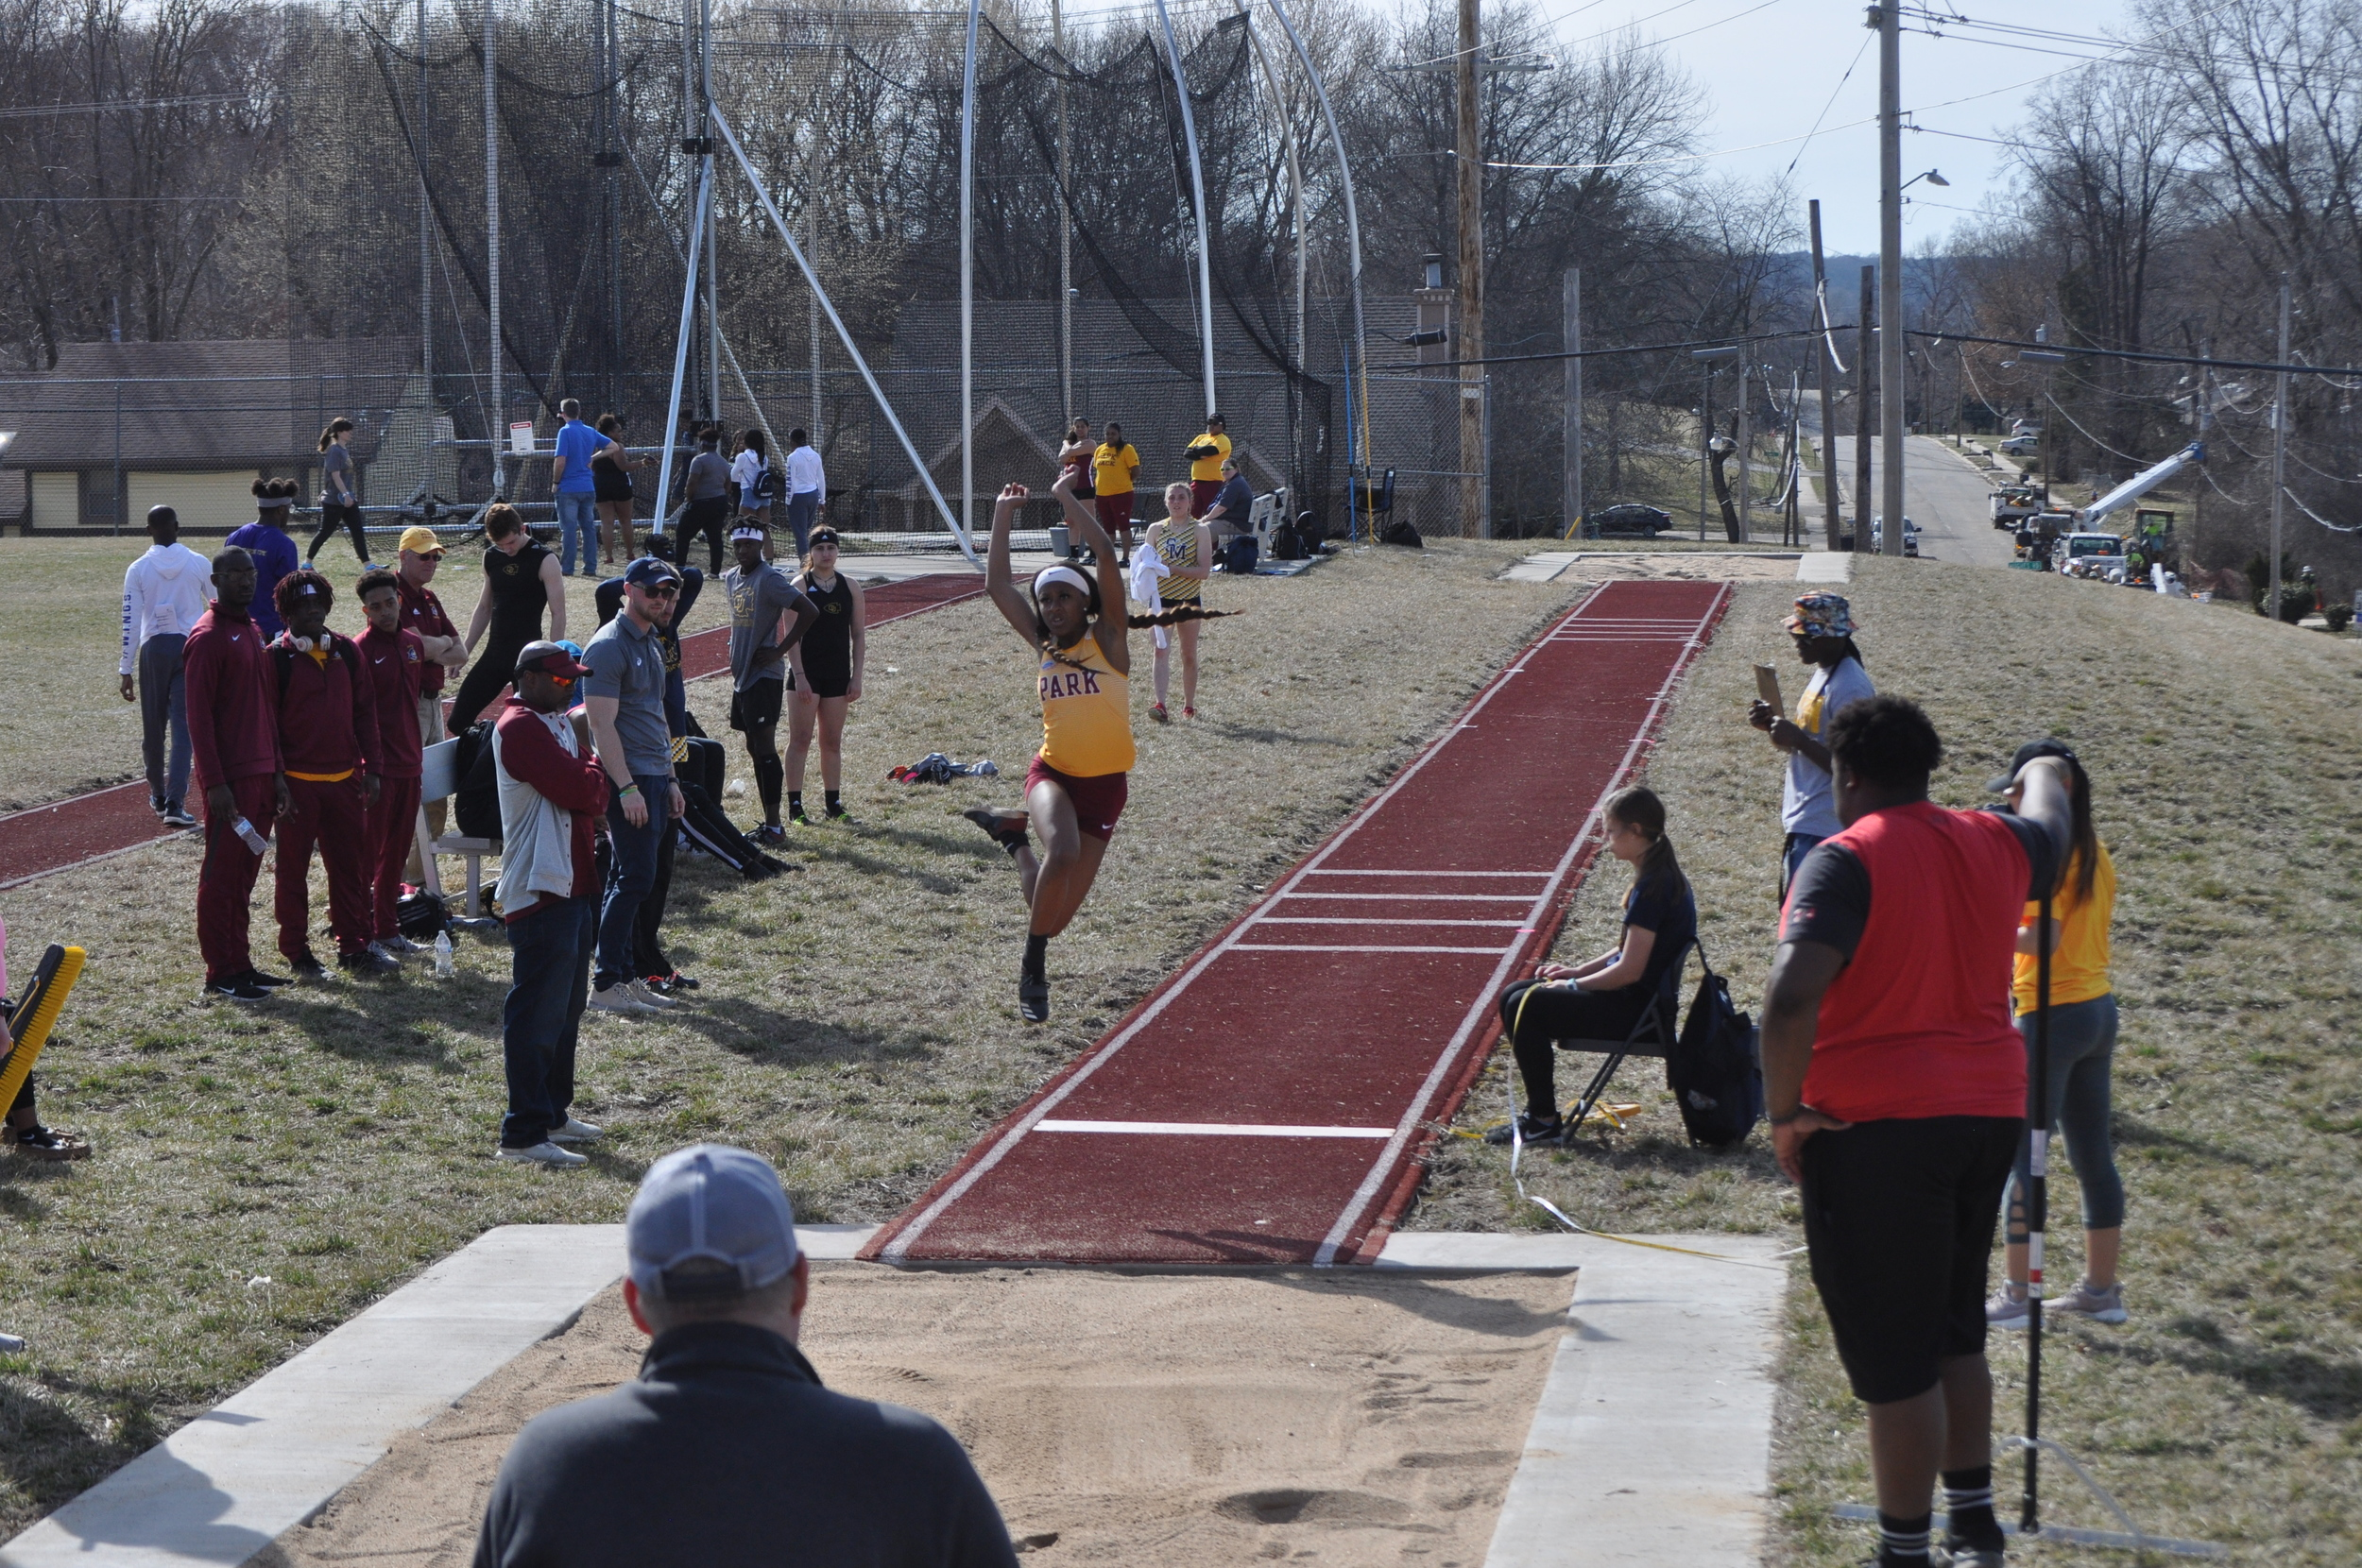 PARK ATHLETICS  Park freshman Bailey Turner was named the American Midwest Conference freshman of the year for the outdoor track and field season. The Olathe, Kan., native broke the school record in the triple jump last month at the KU Relays.